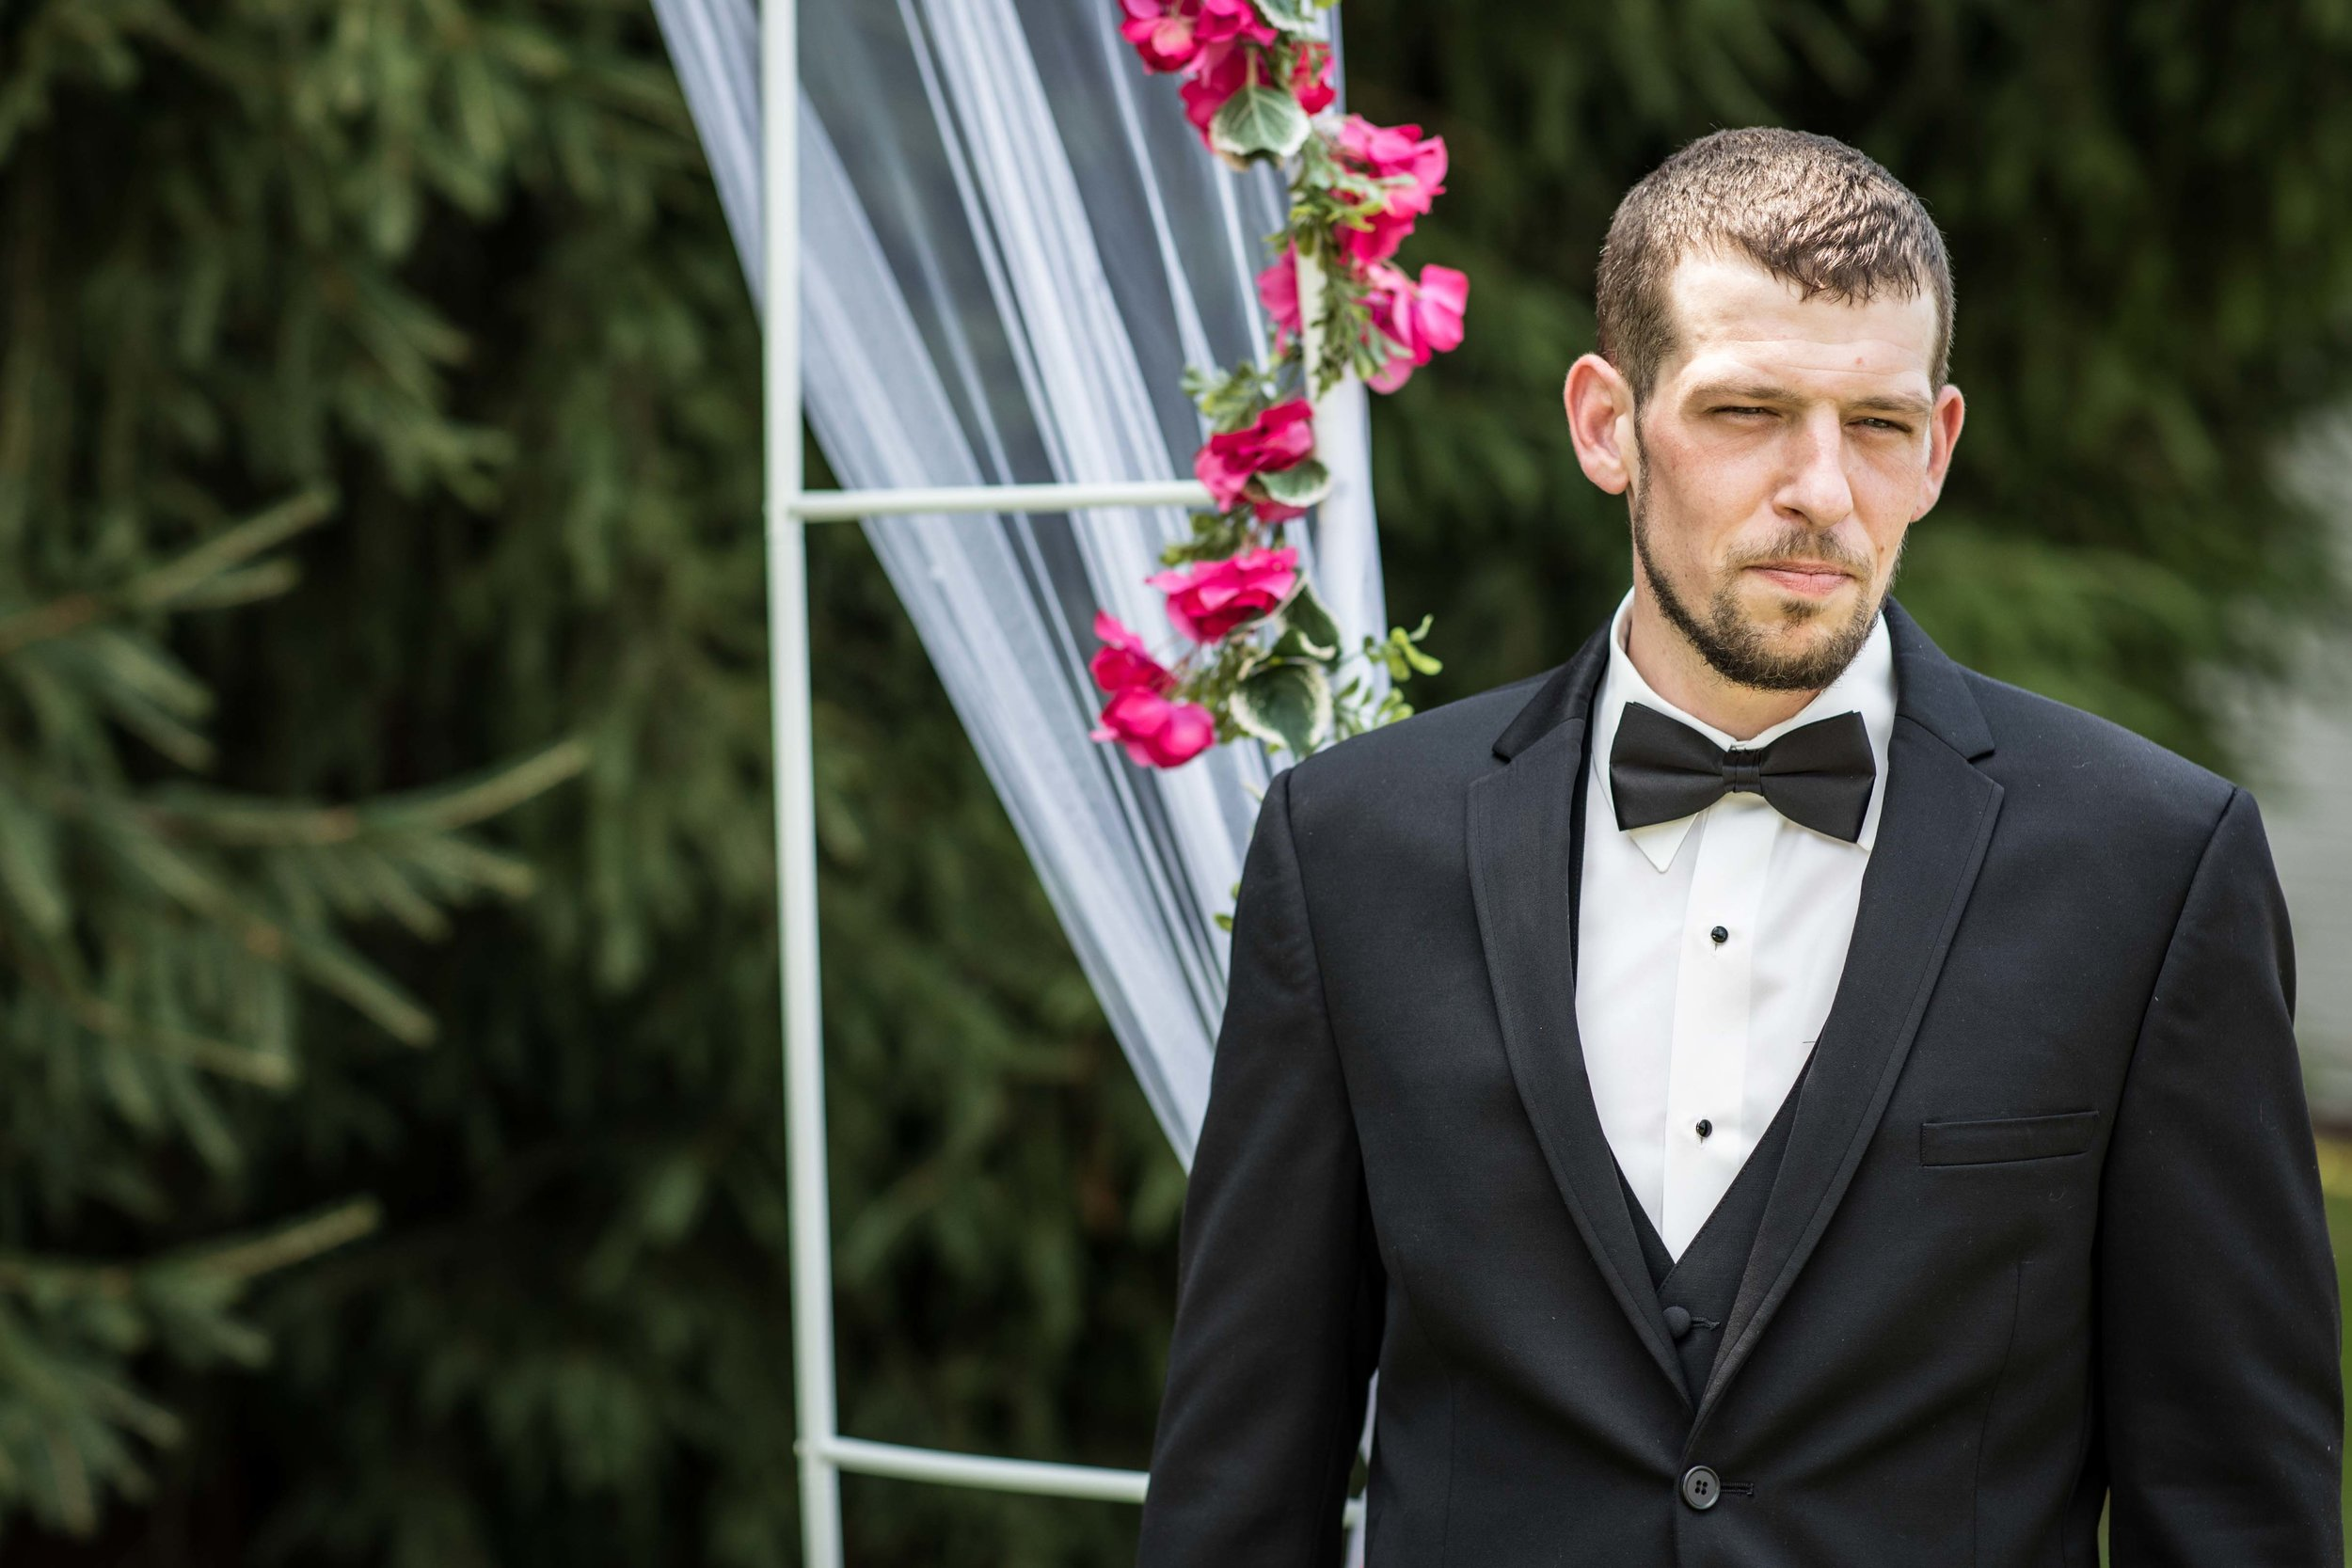 The groom patiently waits for his bride at the beginning of the ceremony